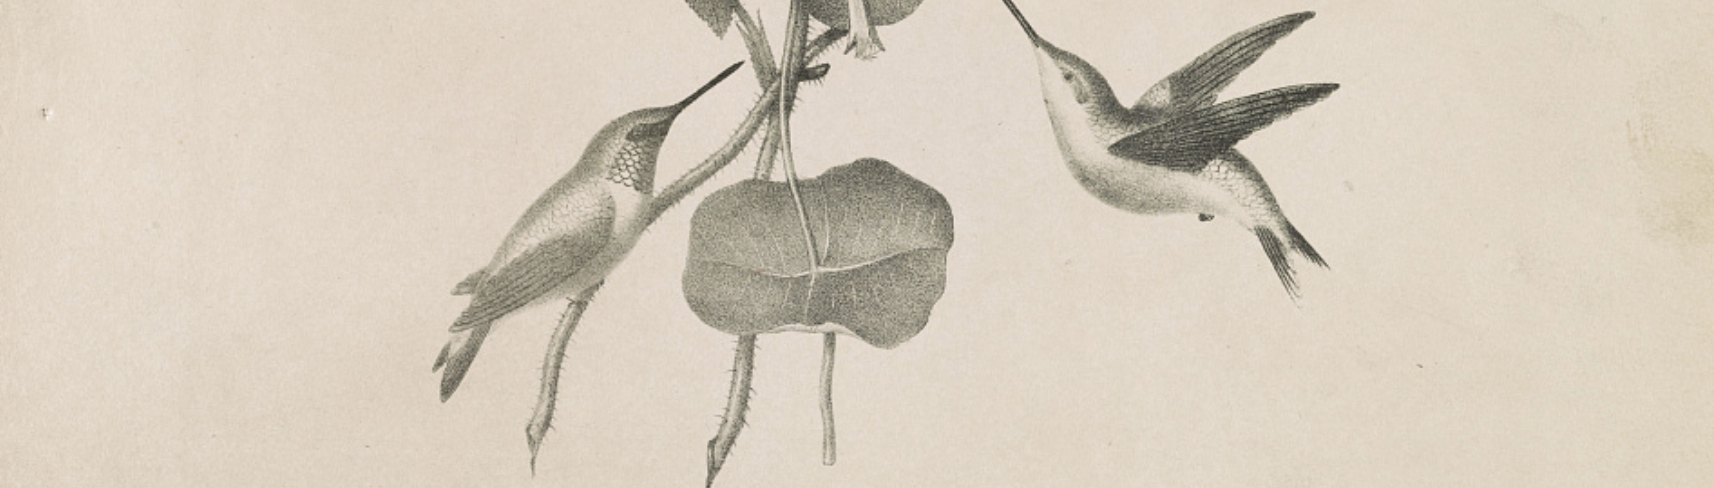 Detail from Hummingbirds / from life & on stone by M.E.D. Brown ; his lith. No. 5 Library St. Phila. via LOC.